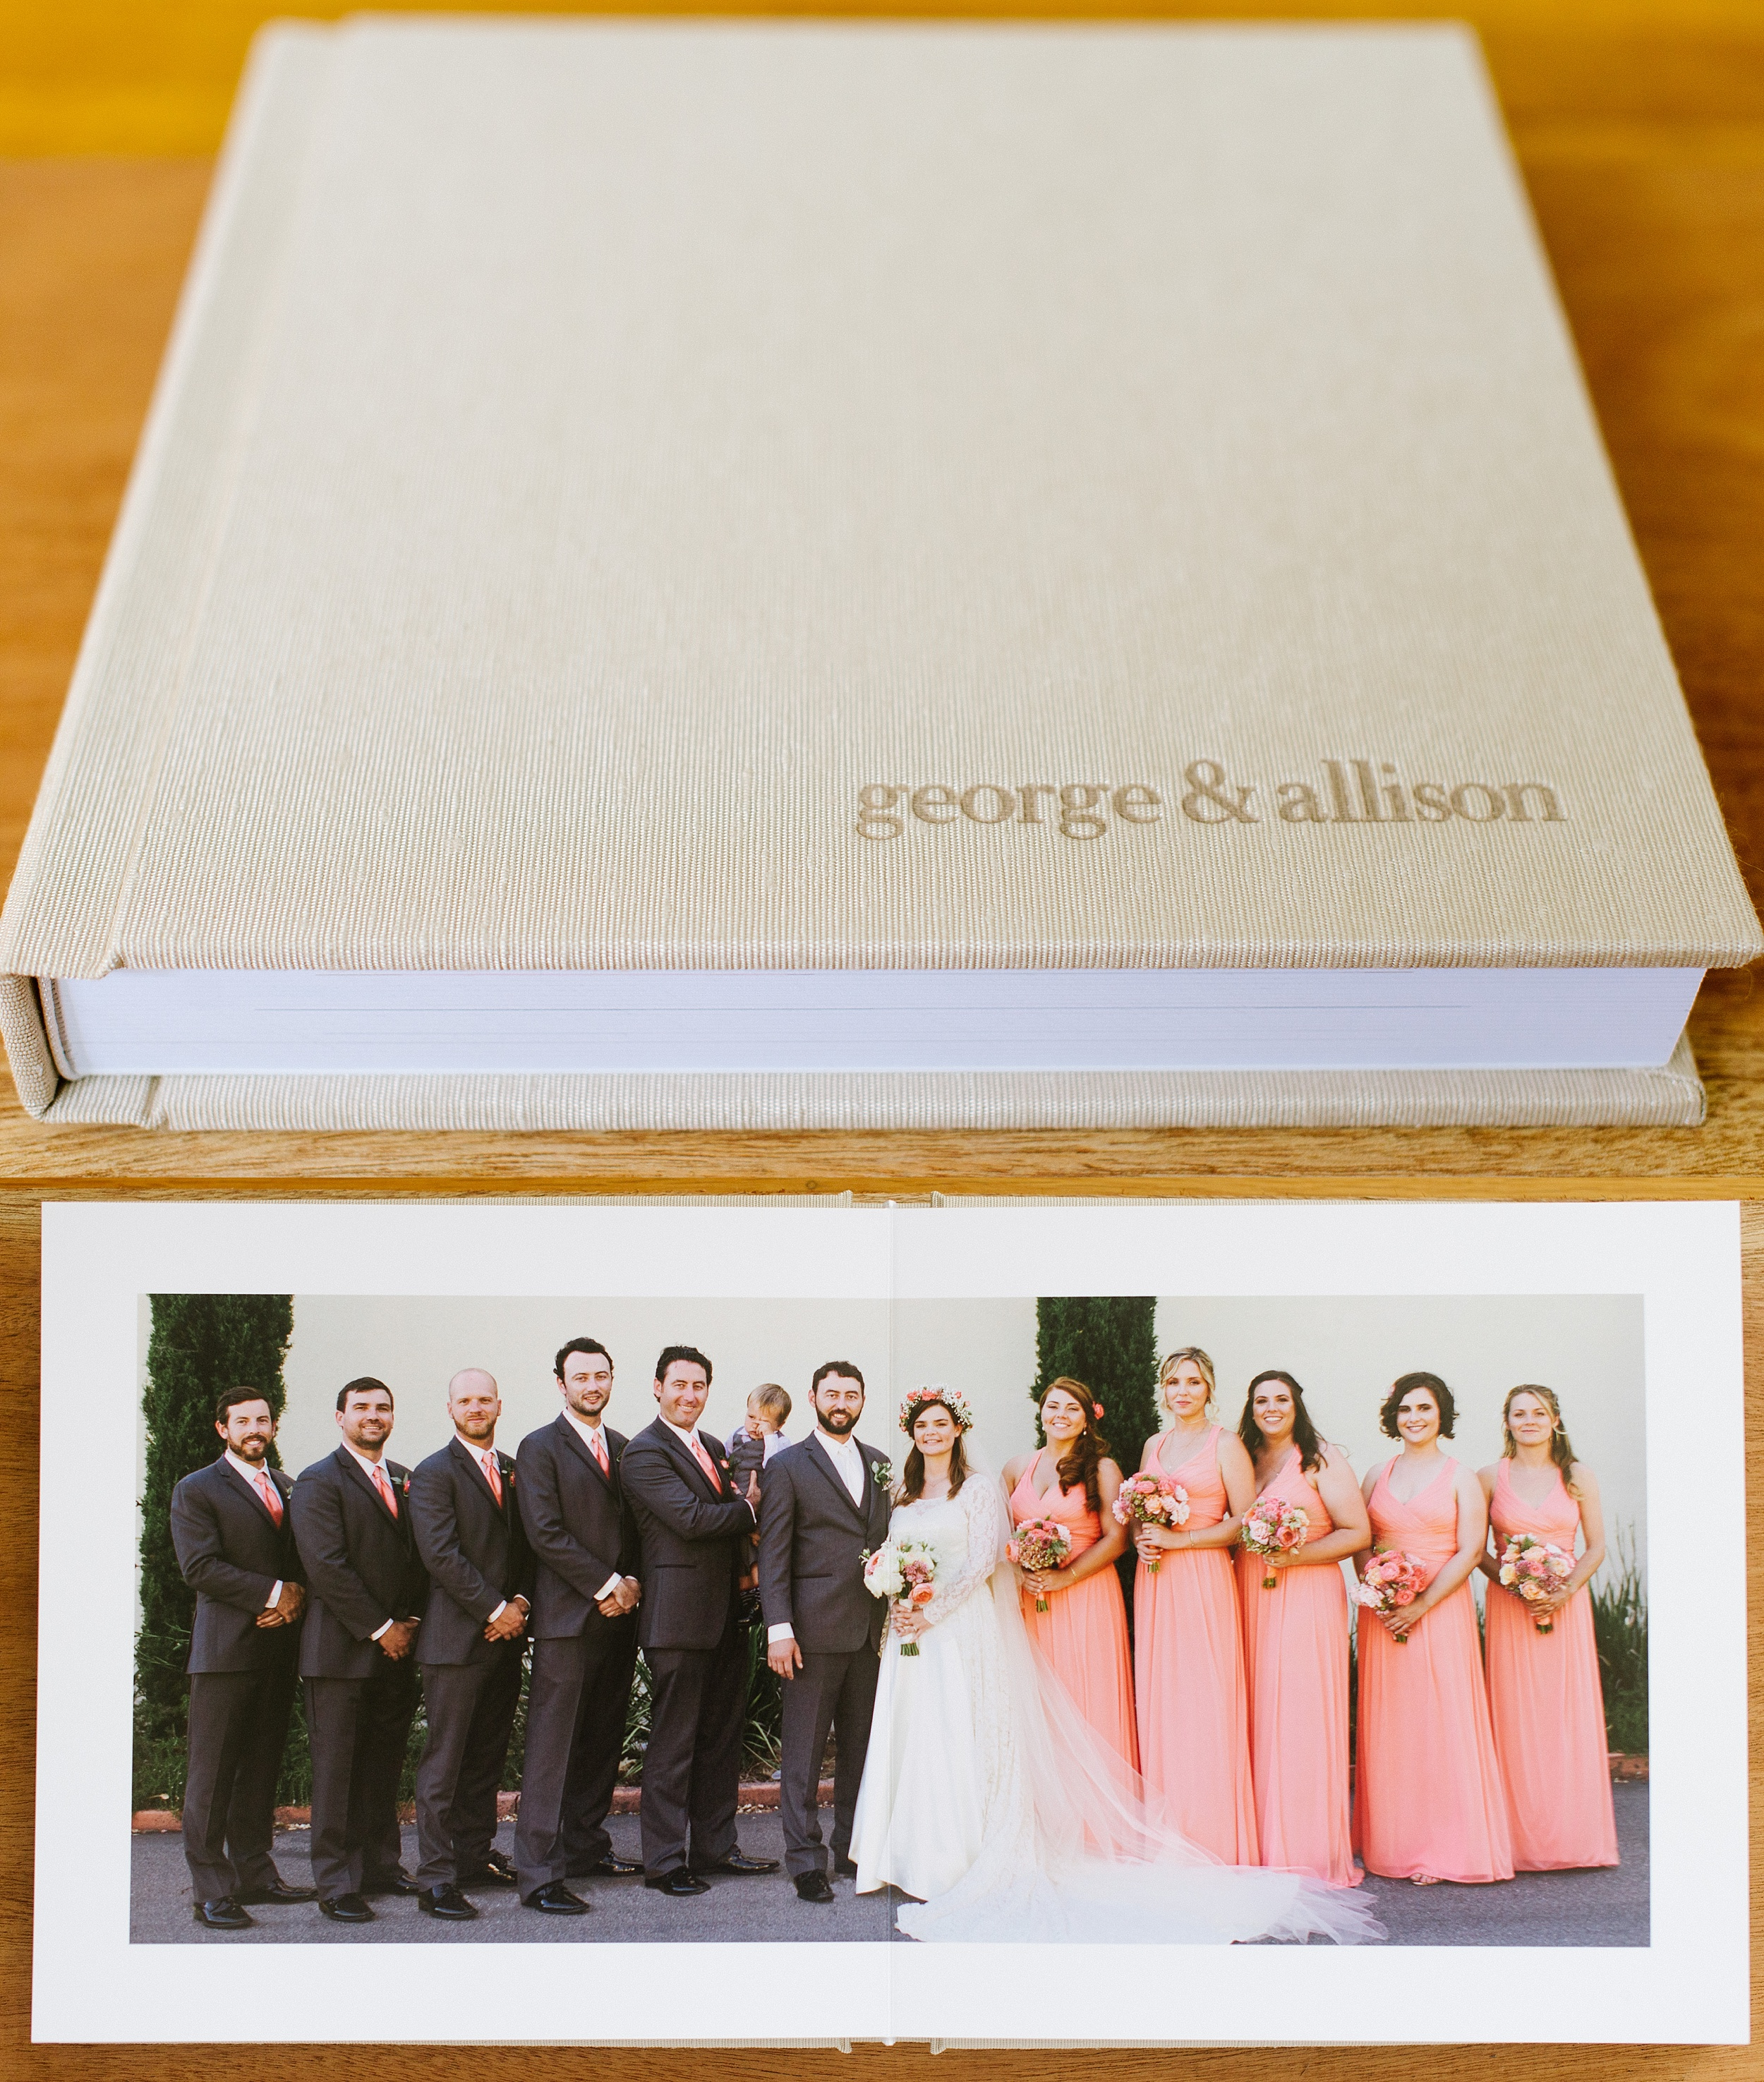 cdp_wedding_albums-18.jpg